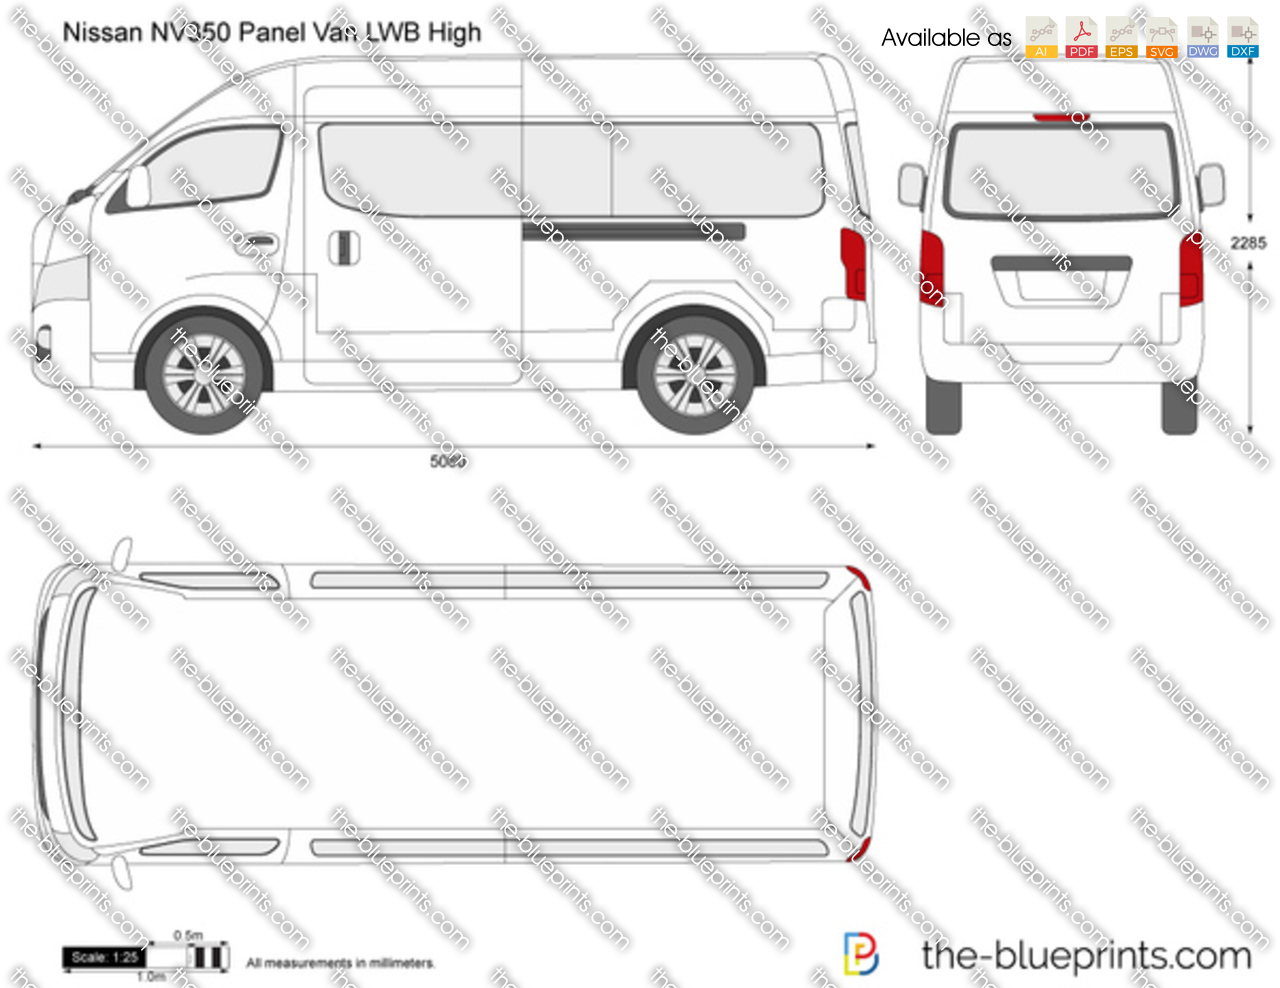 Nissan NV350 Panel Van LWB High